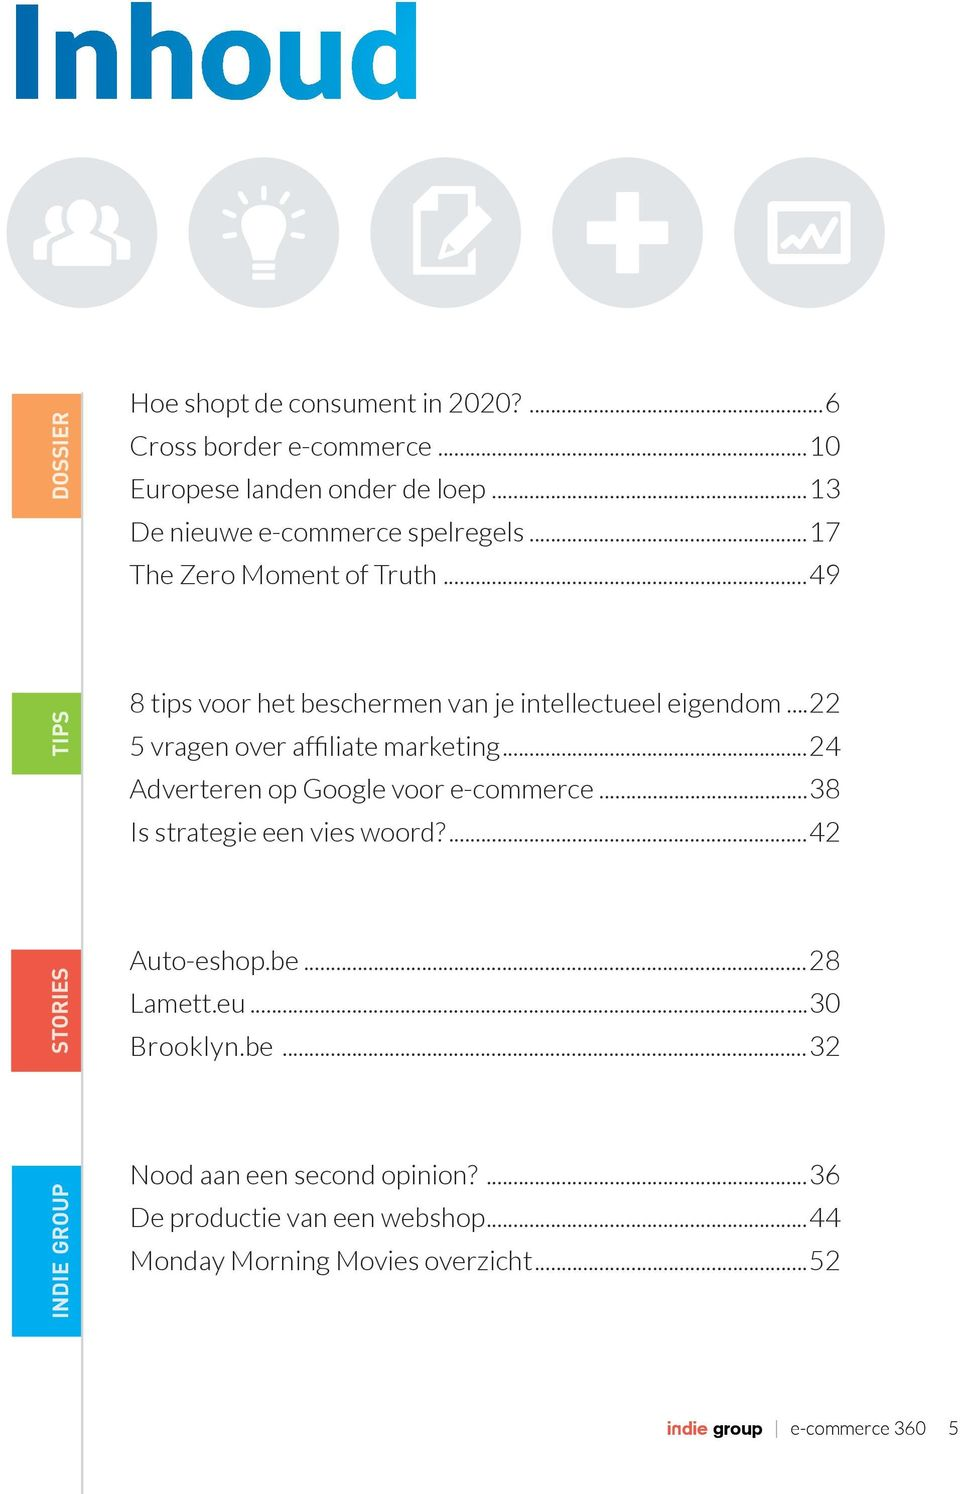 ..22 5 vragen over affiliate marketing...24 Adverteren op Google voor e-commerce...38 Is strategie een vies woord?